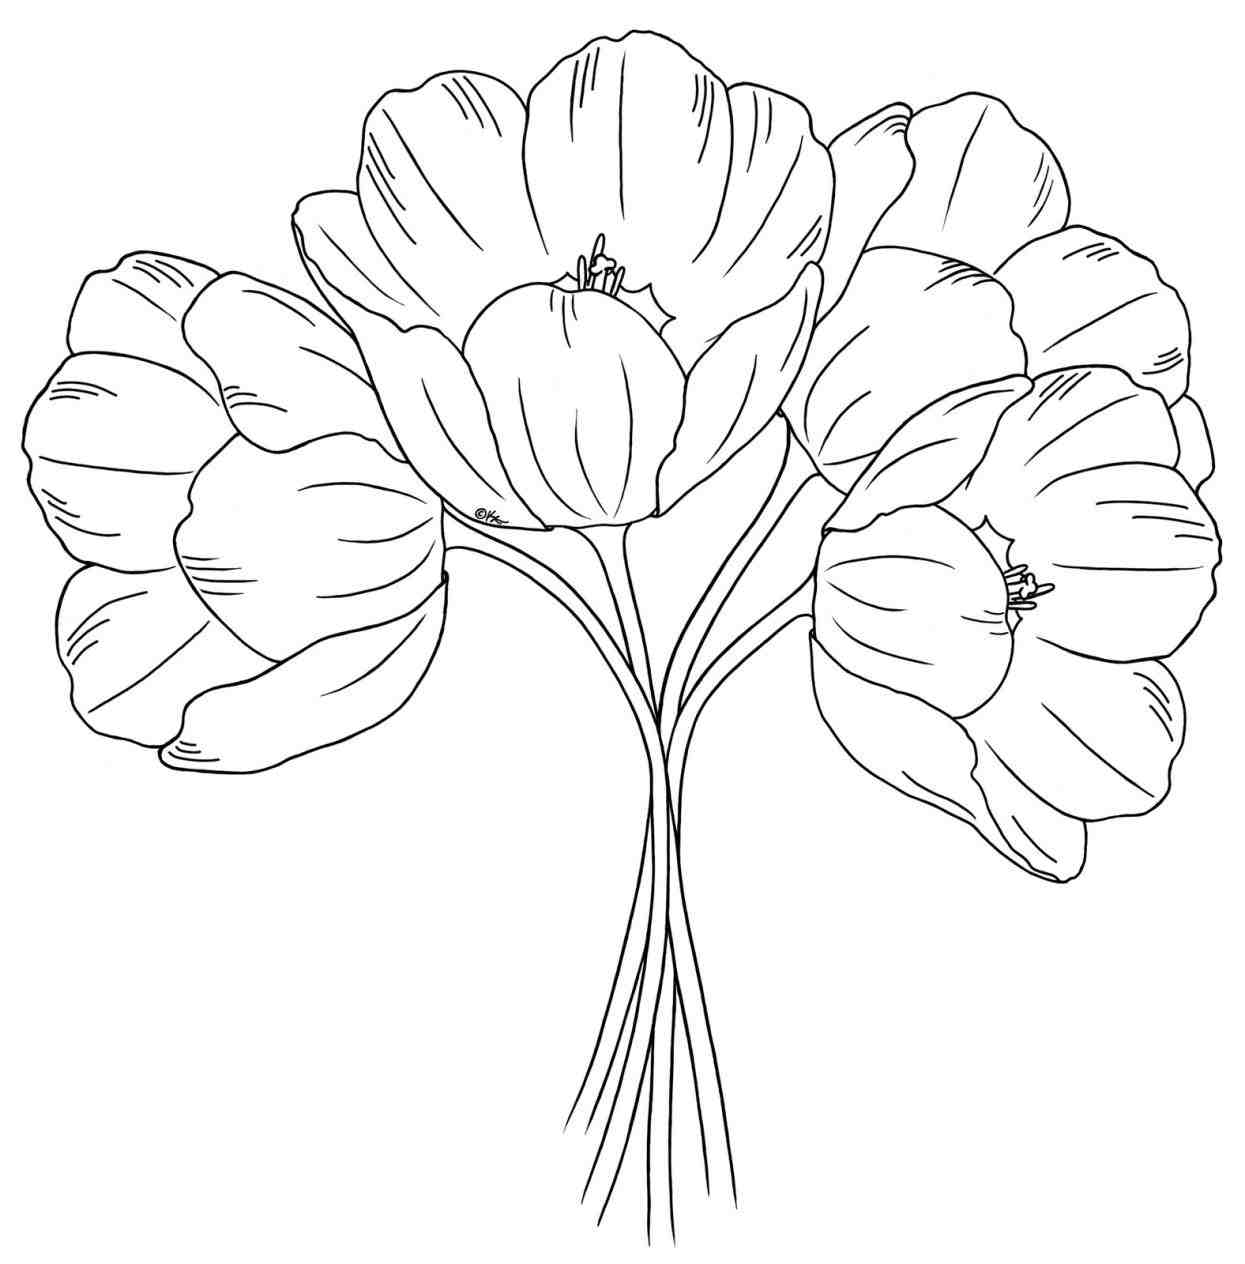 easy tulip drawing how to draw a tulip step by step drawing tutorials tulip drawing easy